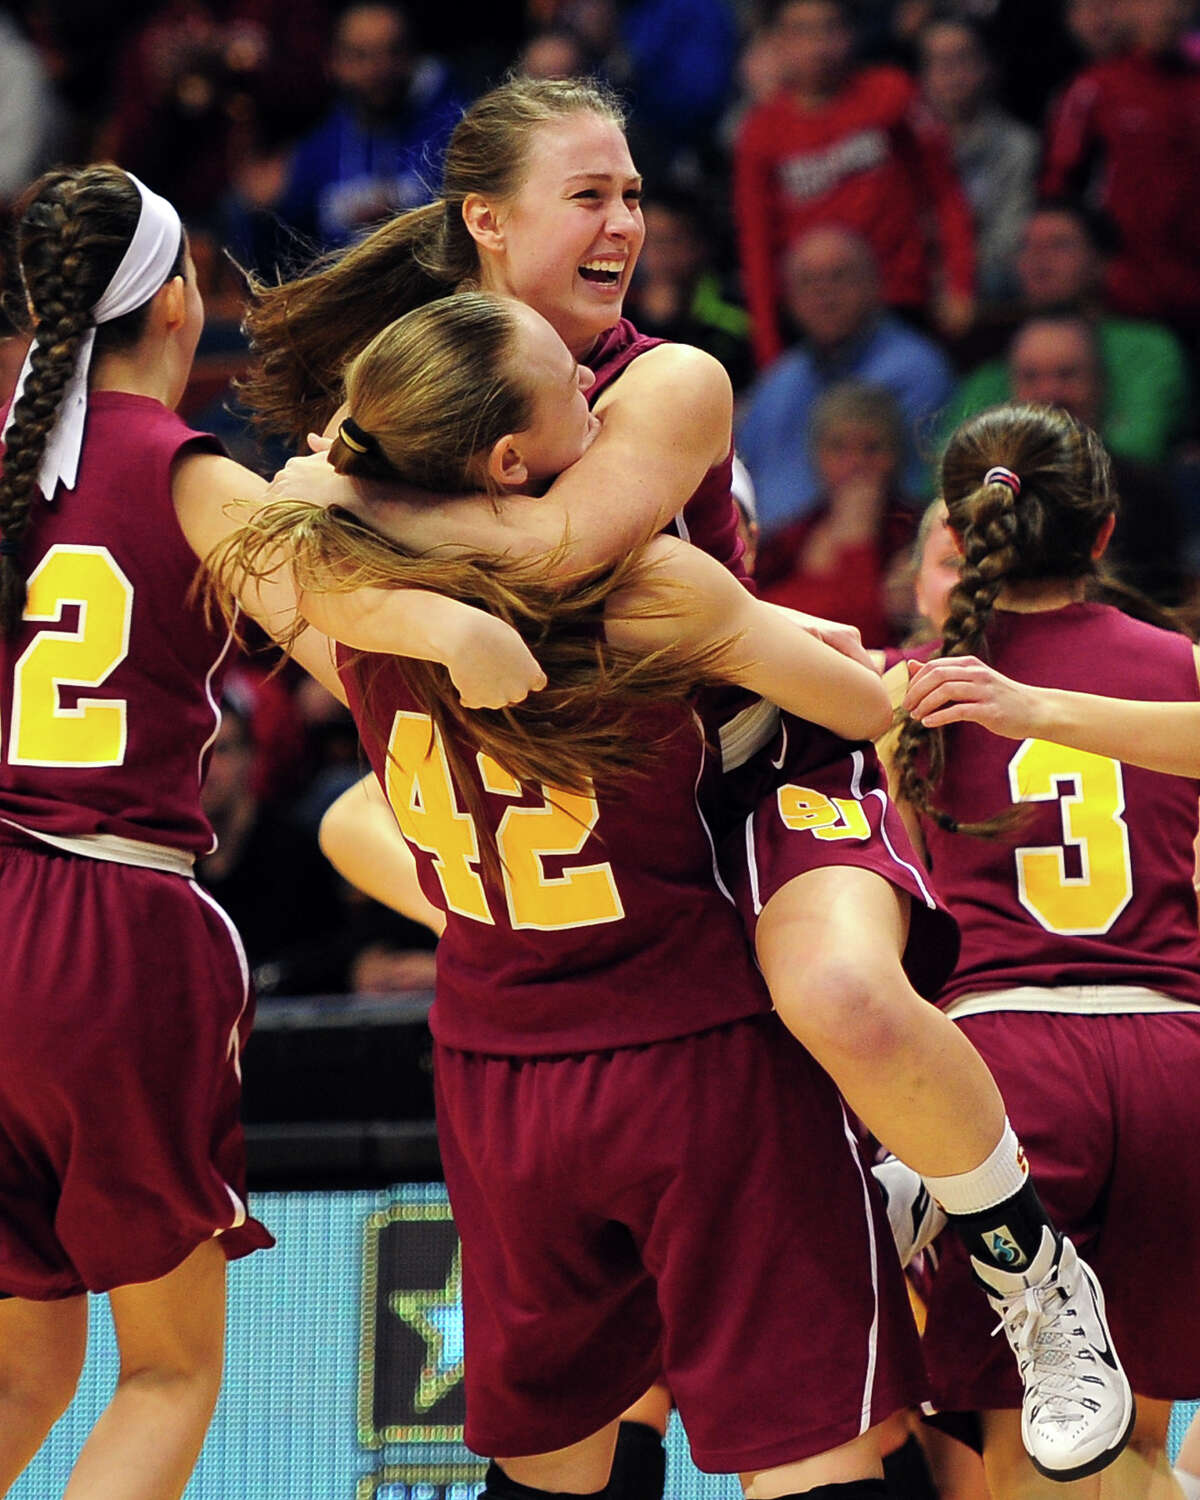 St. Joseph's Jacqueline Jozefick (42) and Erika Horvath hug as they celebrate beating Cromwell, during CIAC State Girls Basketball Tournament action at Mohegan Sun in Uncasville, Conn., on Saturday Mar. 21, 2015.